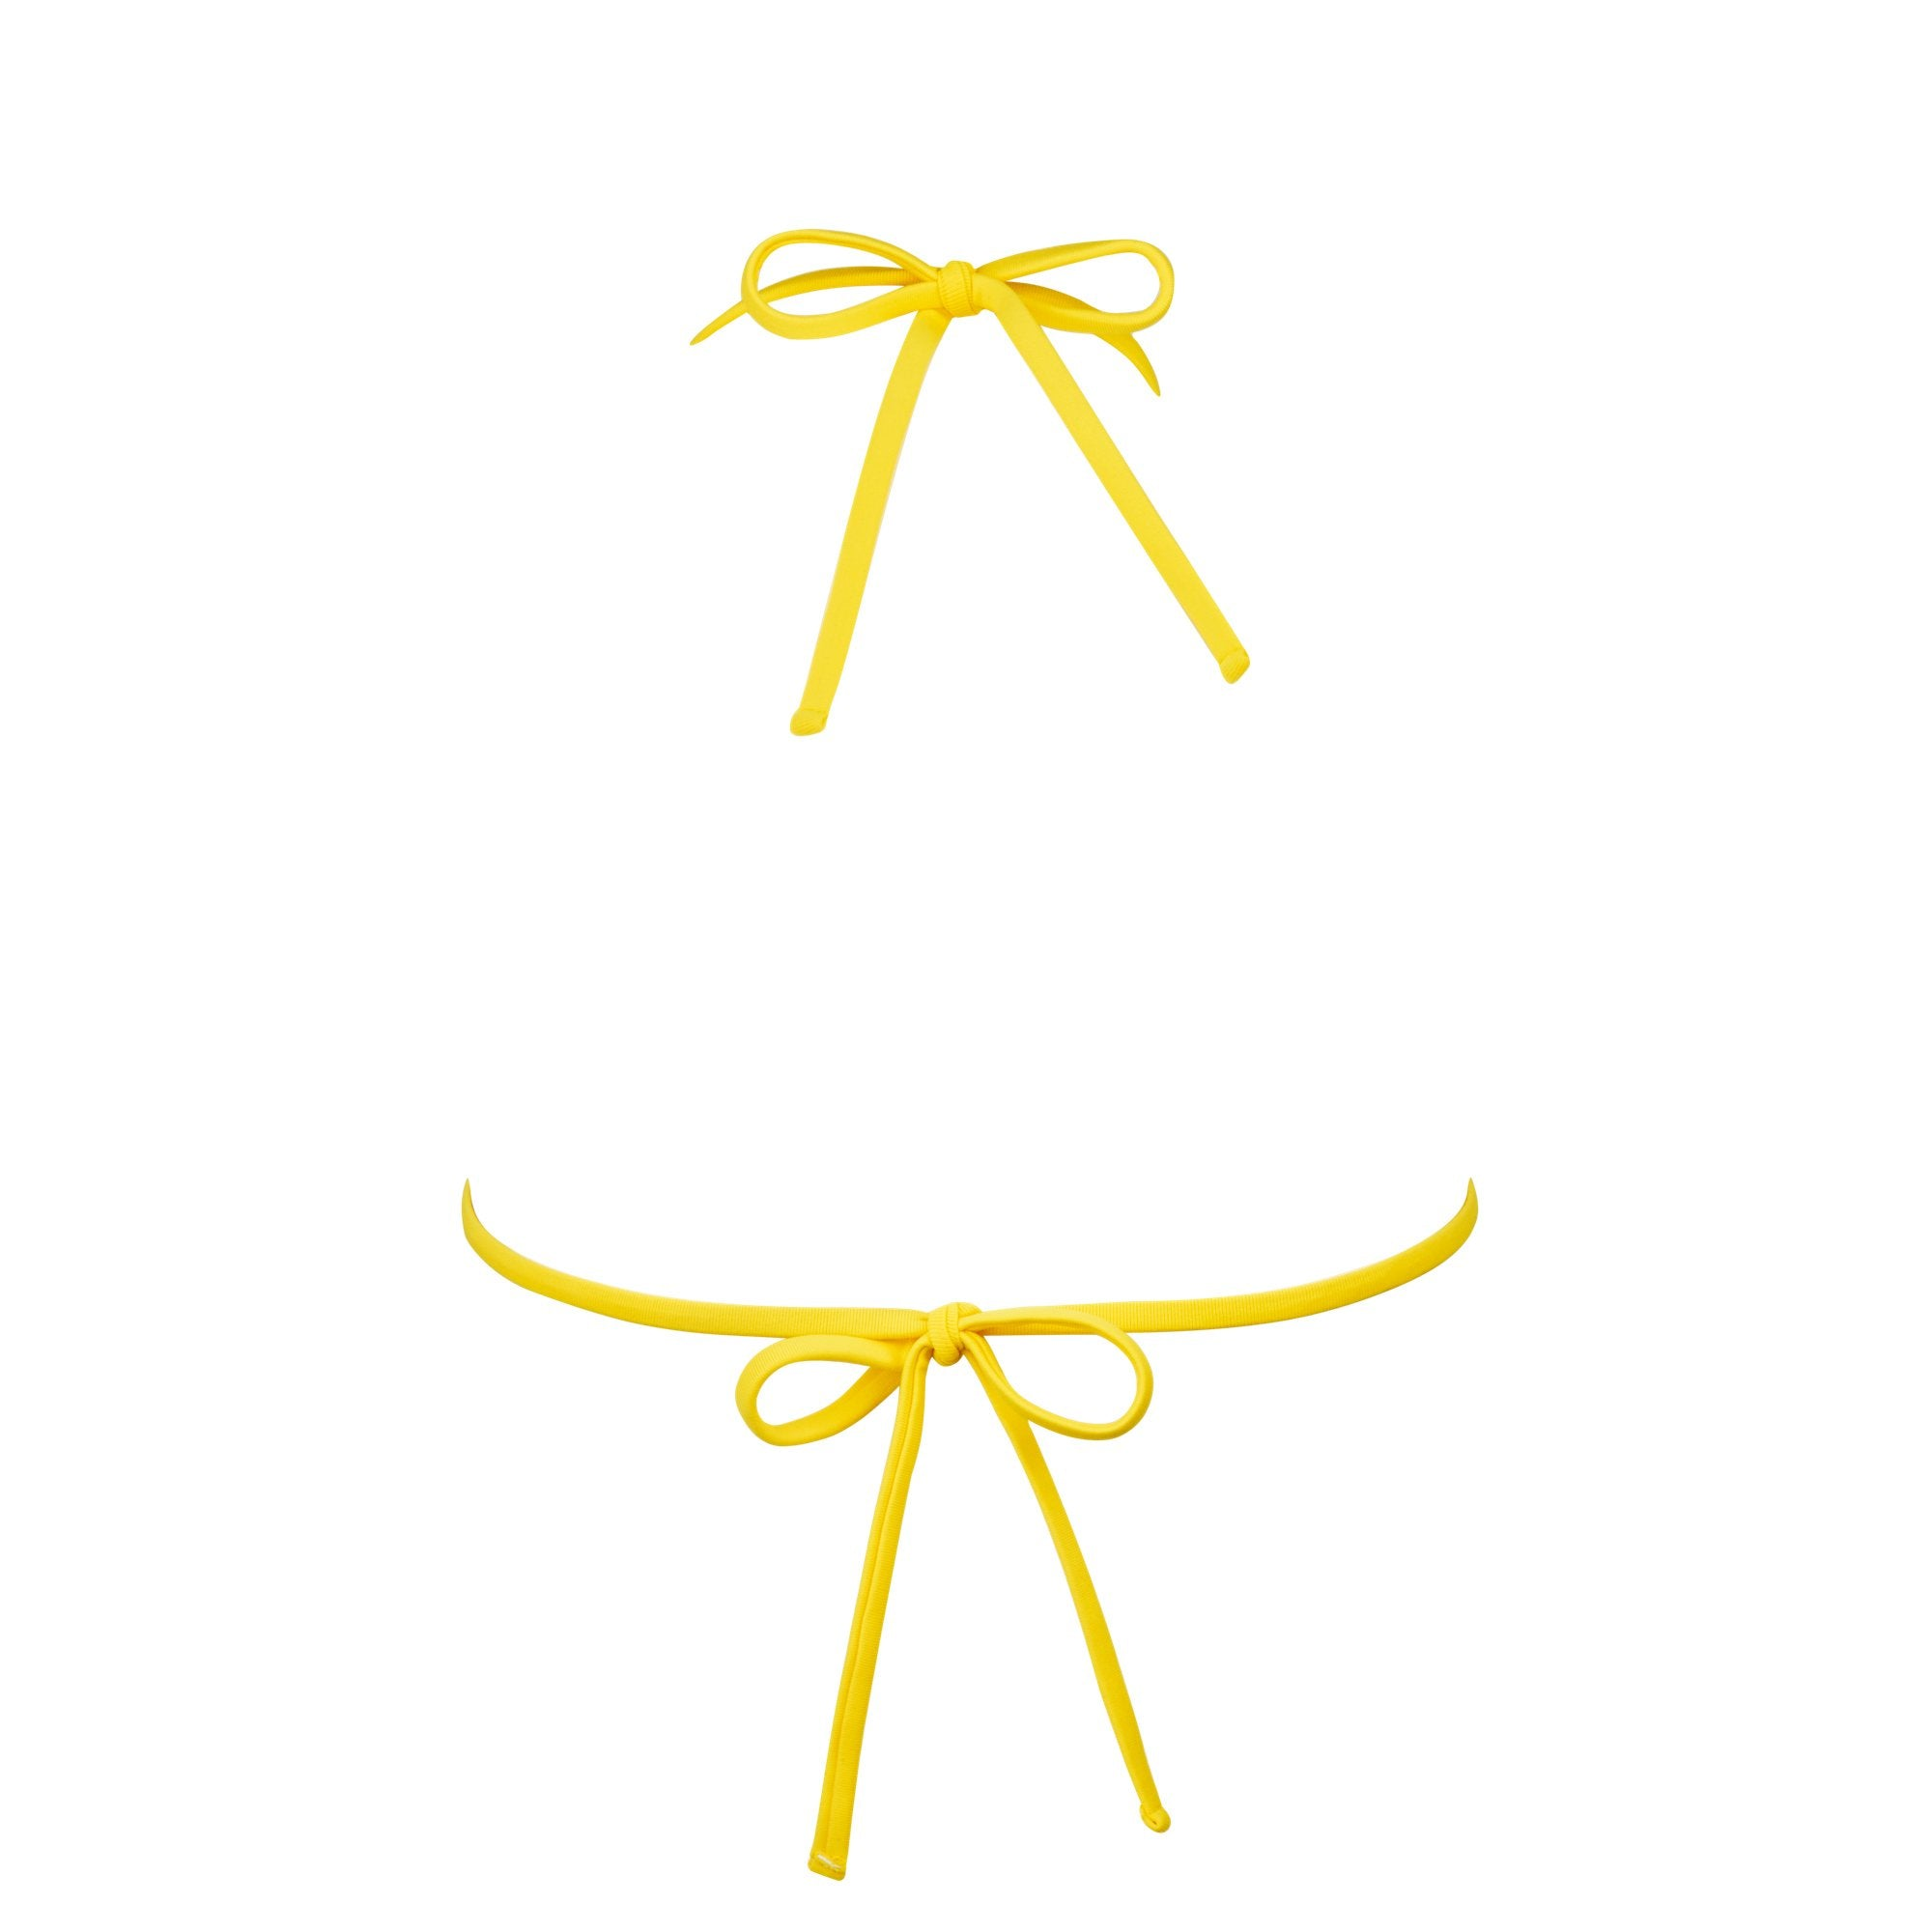 Crisp Bikini Top in Banana by Tuhkana Swimwear